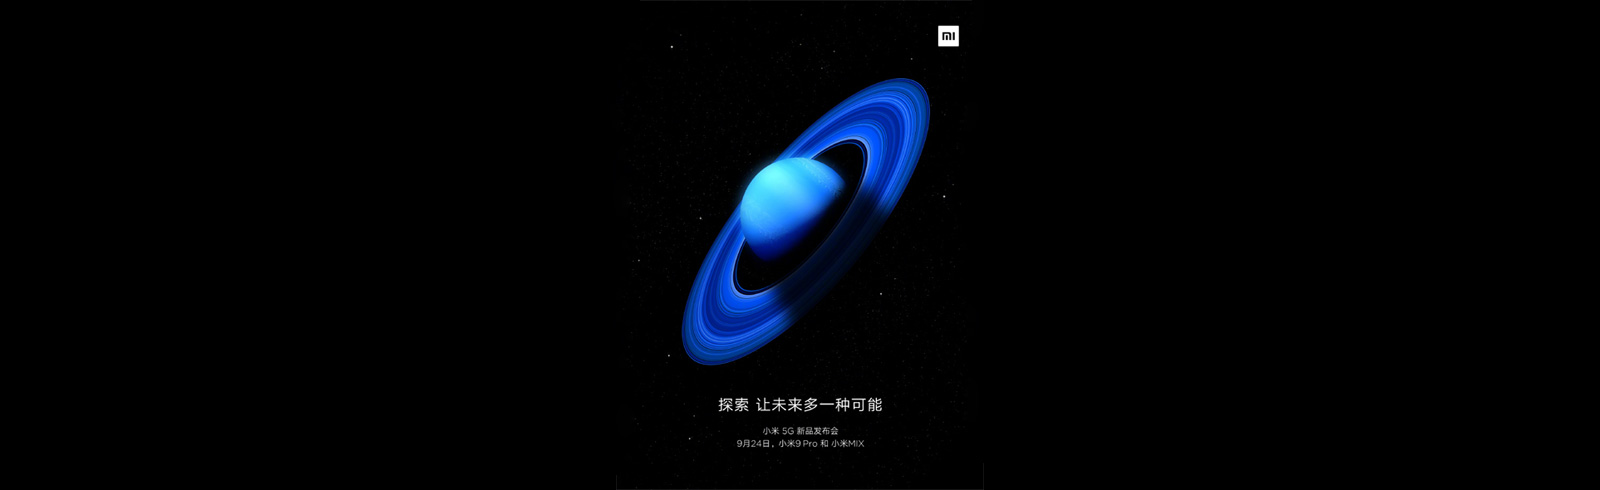 Xiaomi Mi 9 Pro, Mi MIX 4, MIUI 11 debut is set for September 24th